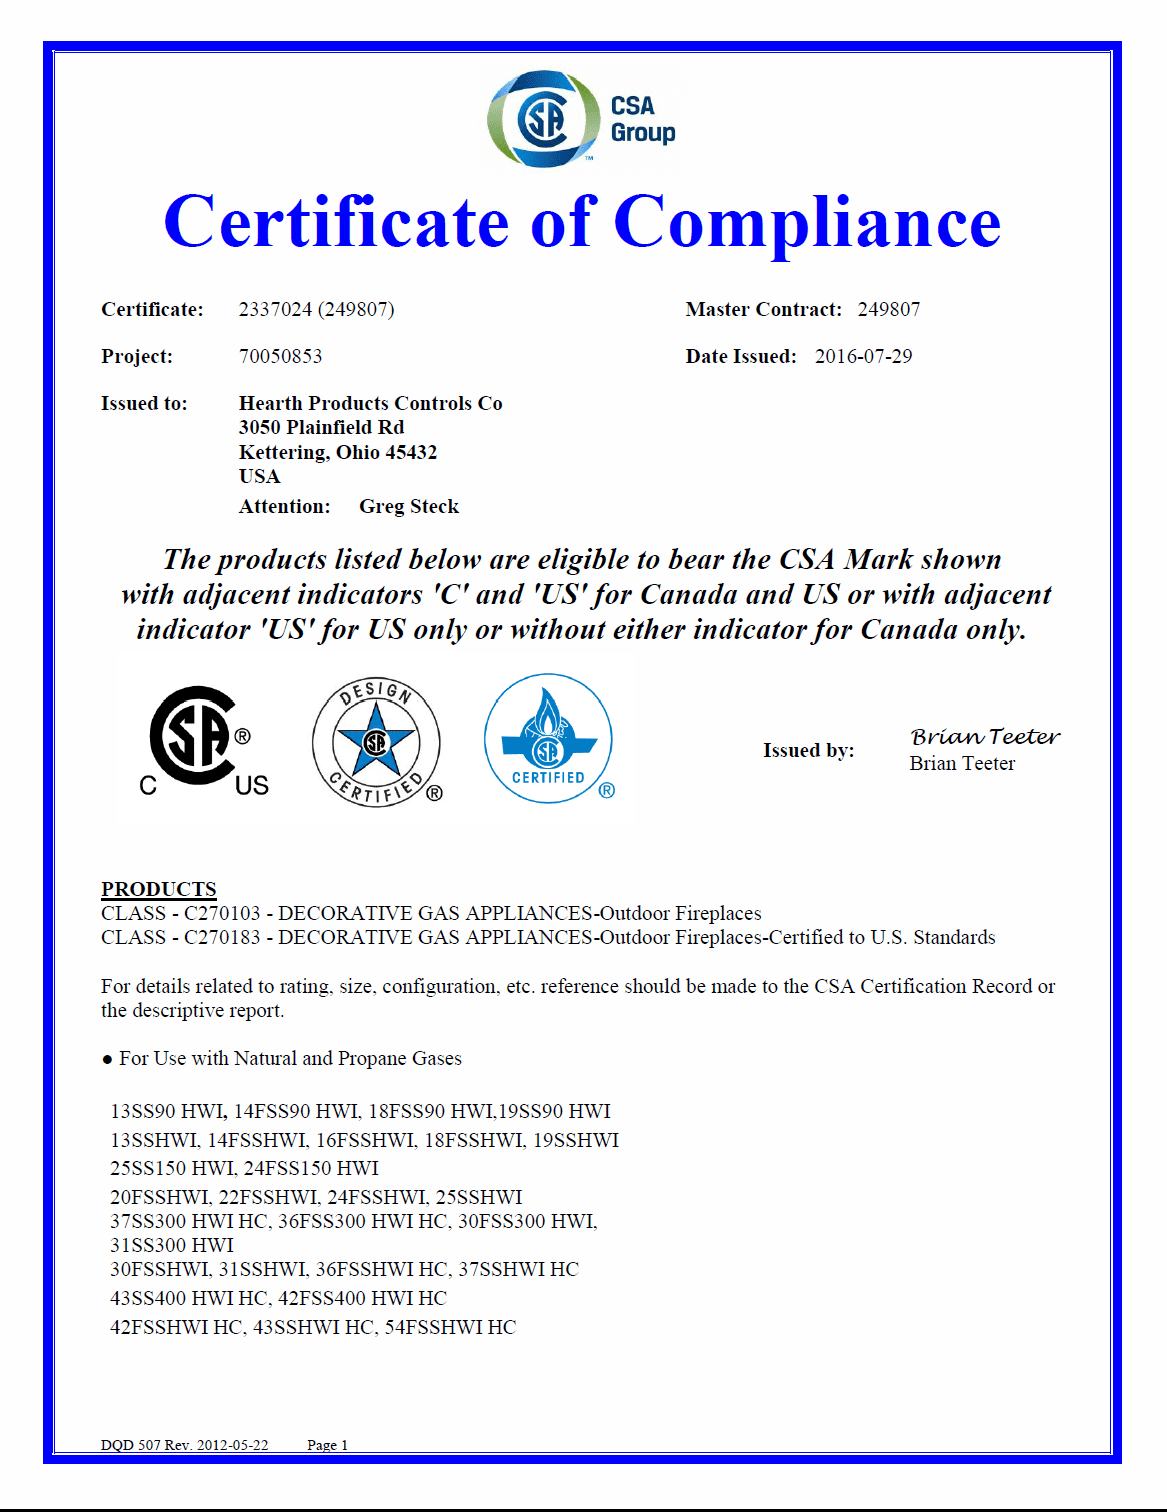 Csa certification for listed fire pit kits 1betcityfo Choice Image